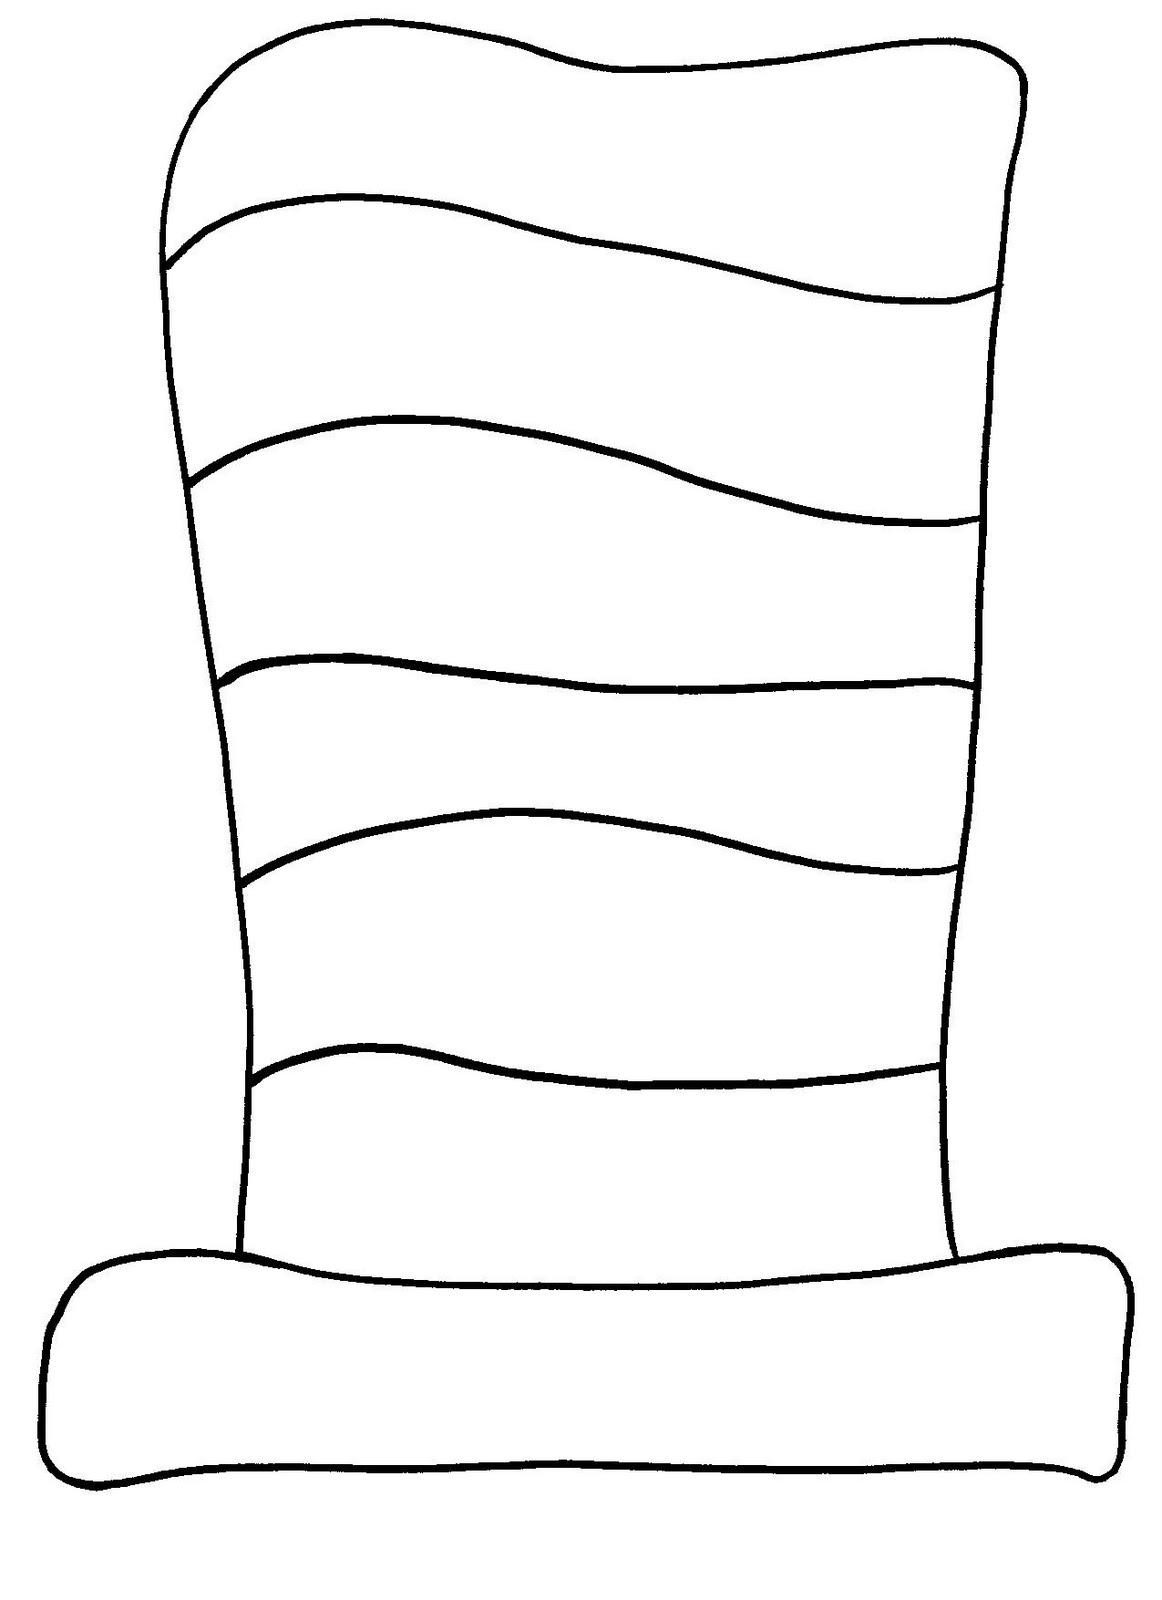 Photos of free template of dr seuss cat in the hat clipart.